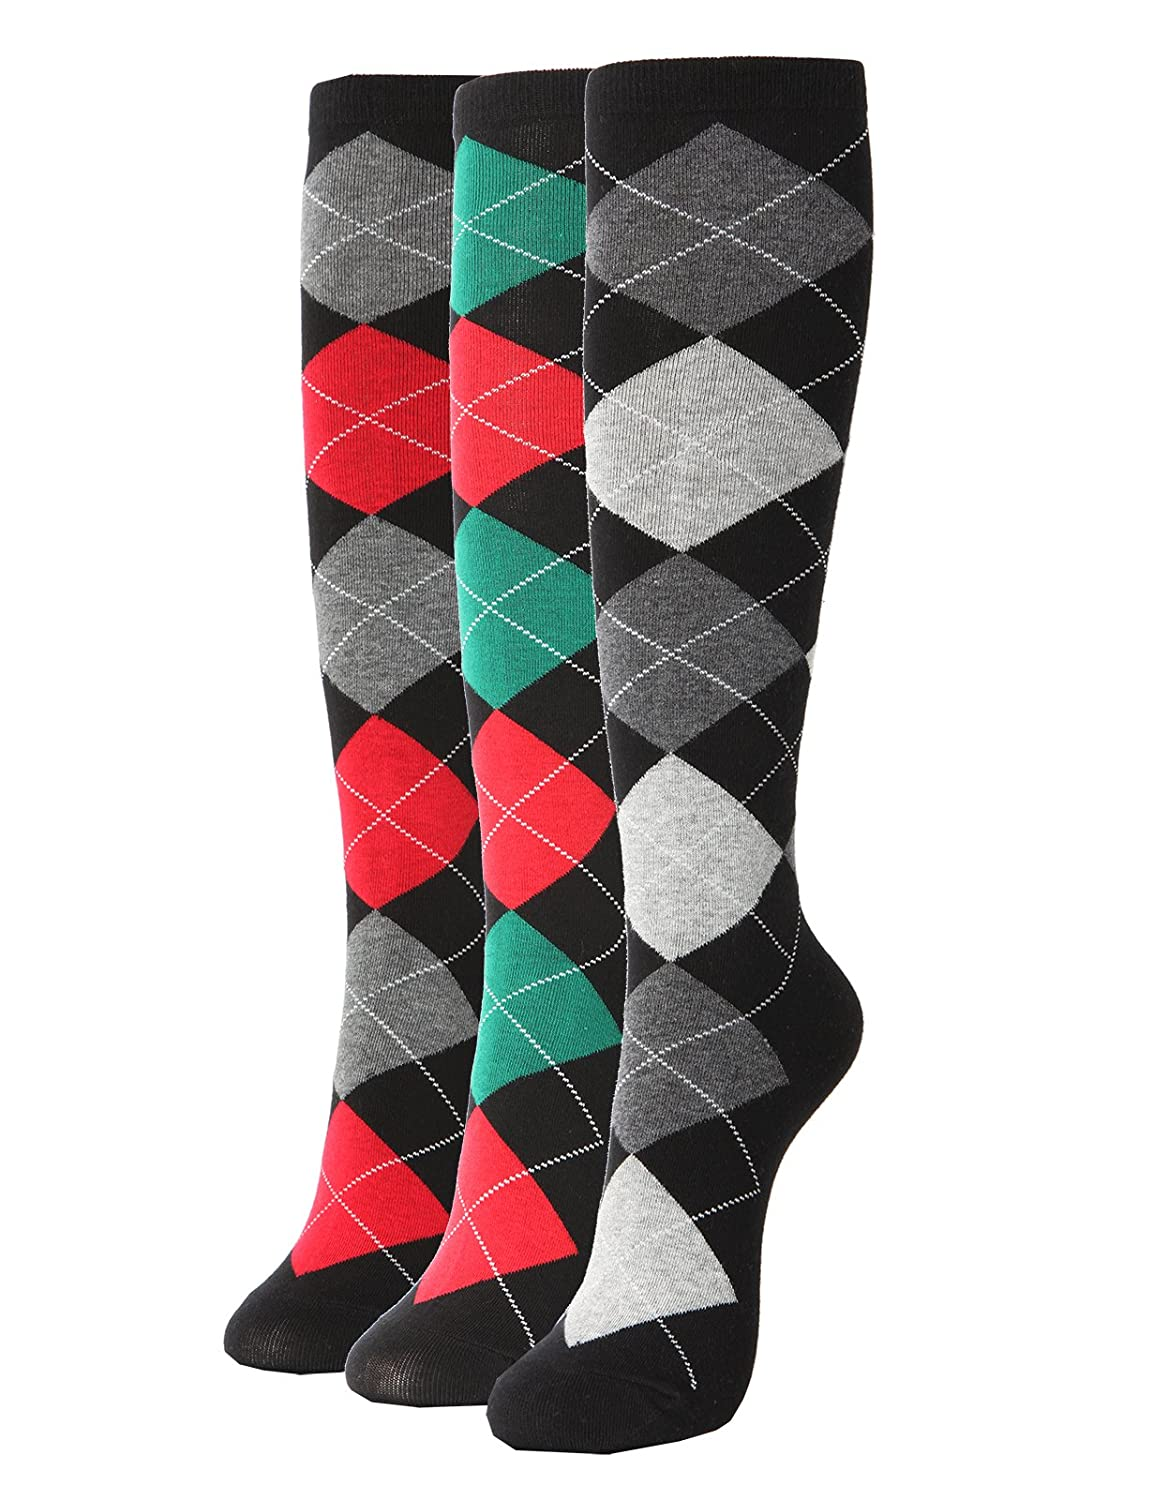 Vintage Socks | 1920s, 1930s, 1940s, 1950s, 1960s History Knee High Socks 3Pairs 1 Set with Cute Colorful Pattern $17.95 AT vintagedancer.com